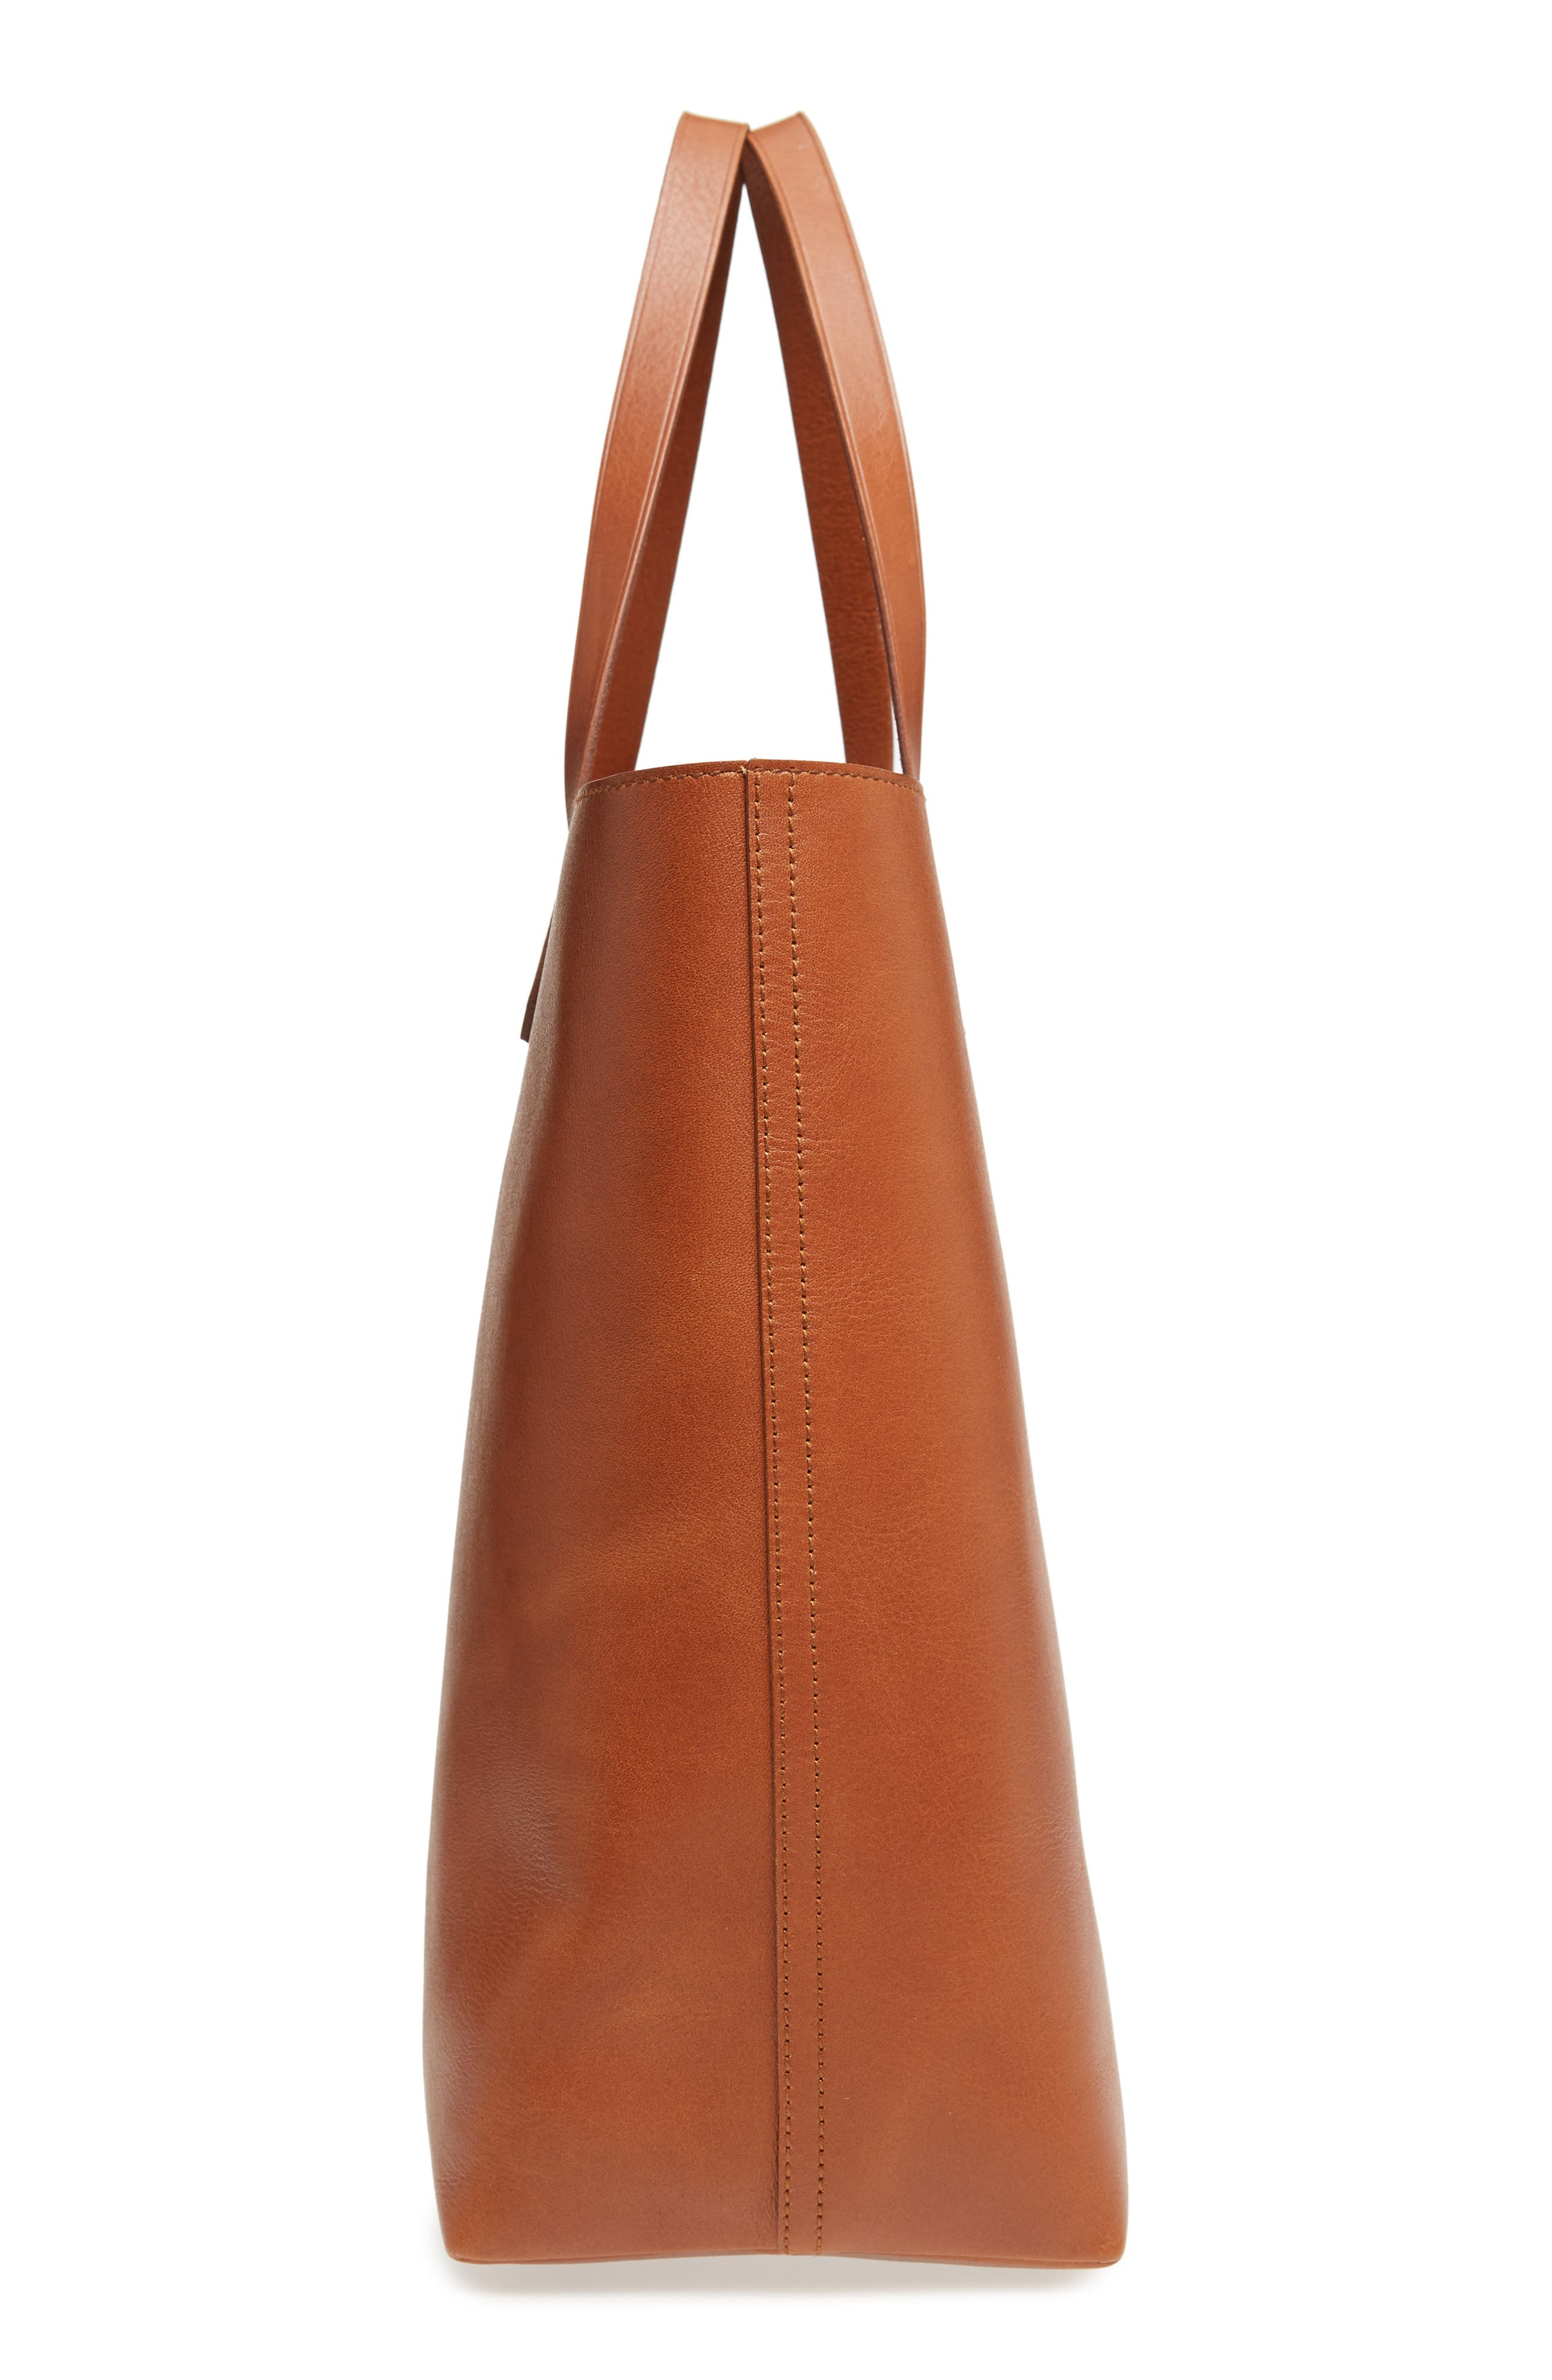 Zip Top Transport Leather Tote,                             Alternate thumbnail 5, color,                             English Saddle